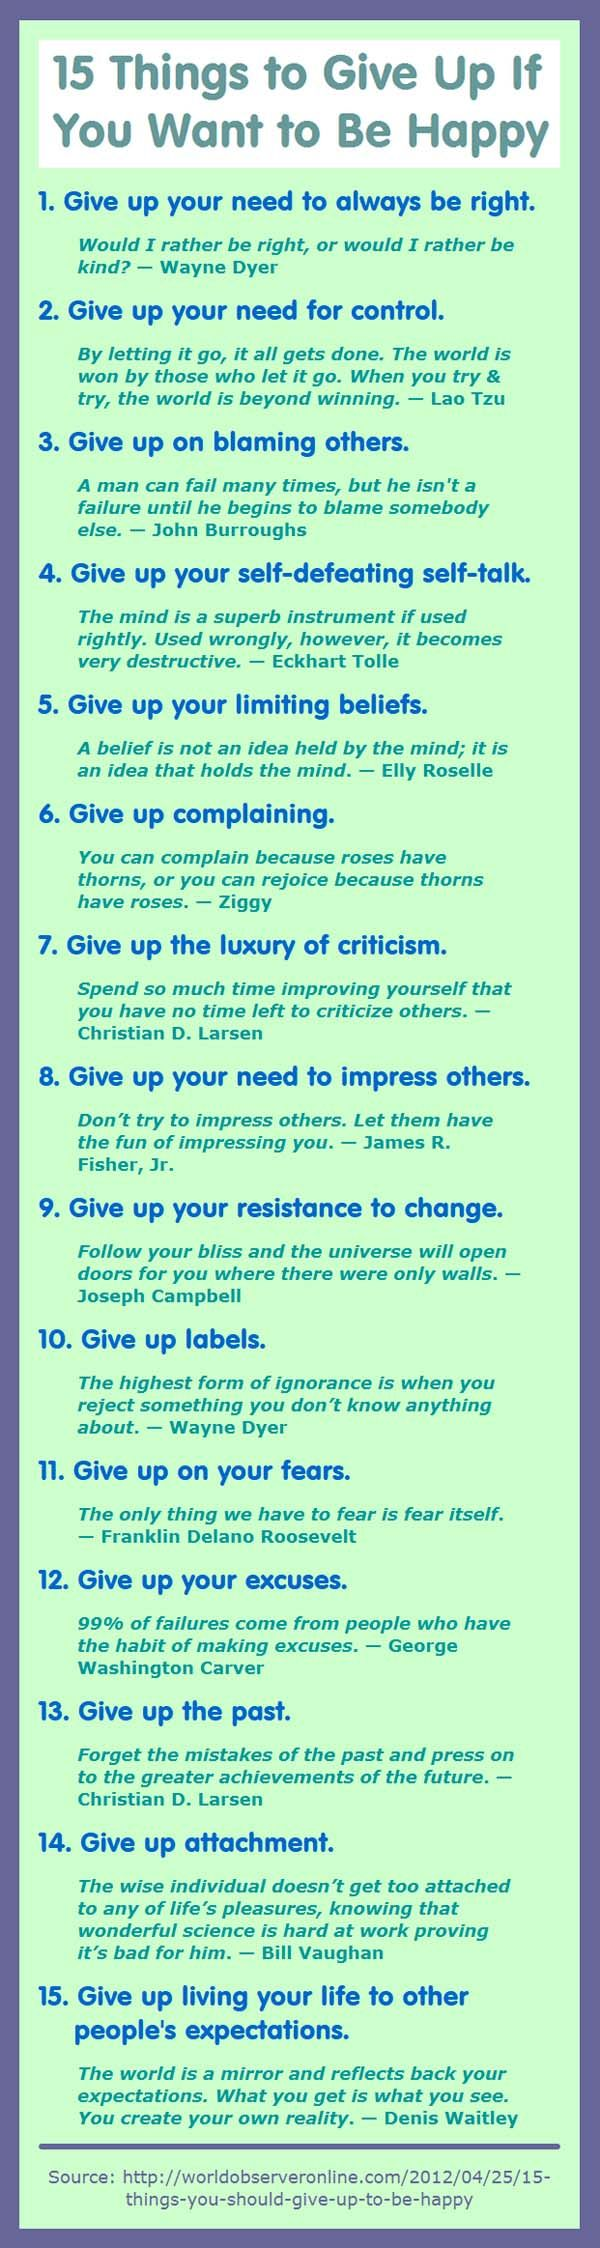 15 things to give up if you want to be happy. Along with inspirational quotes.